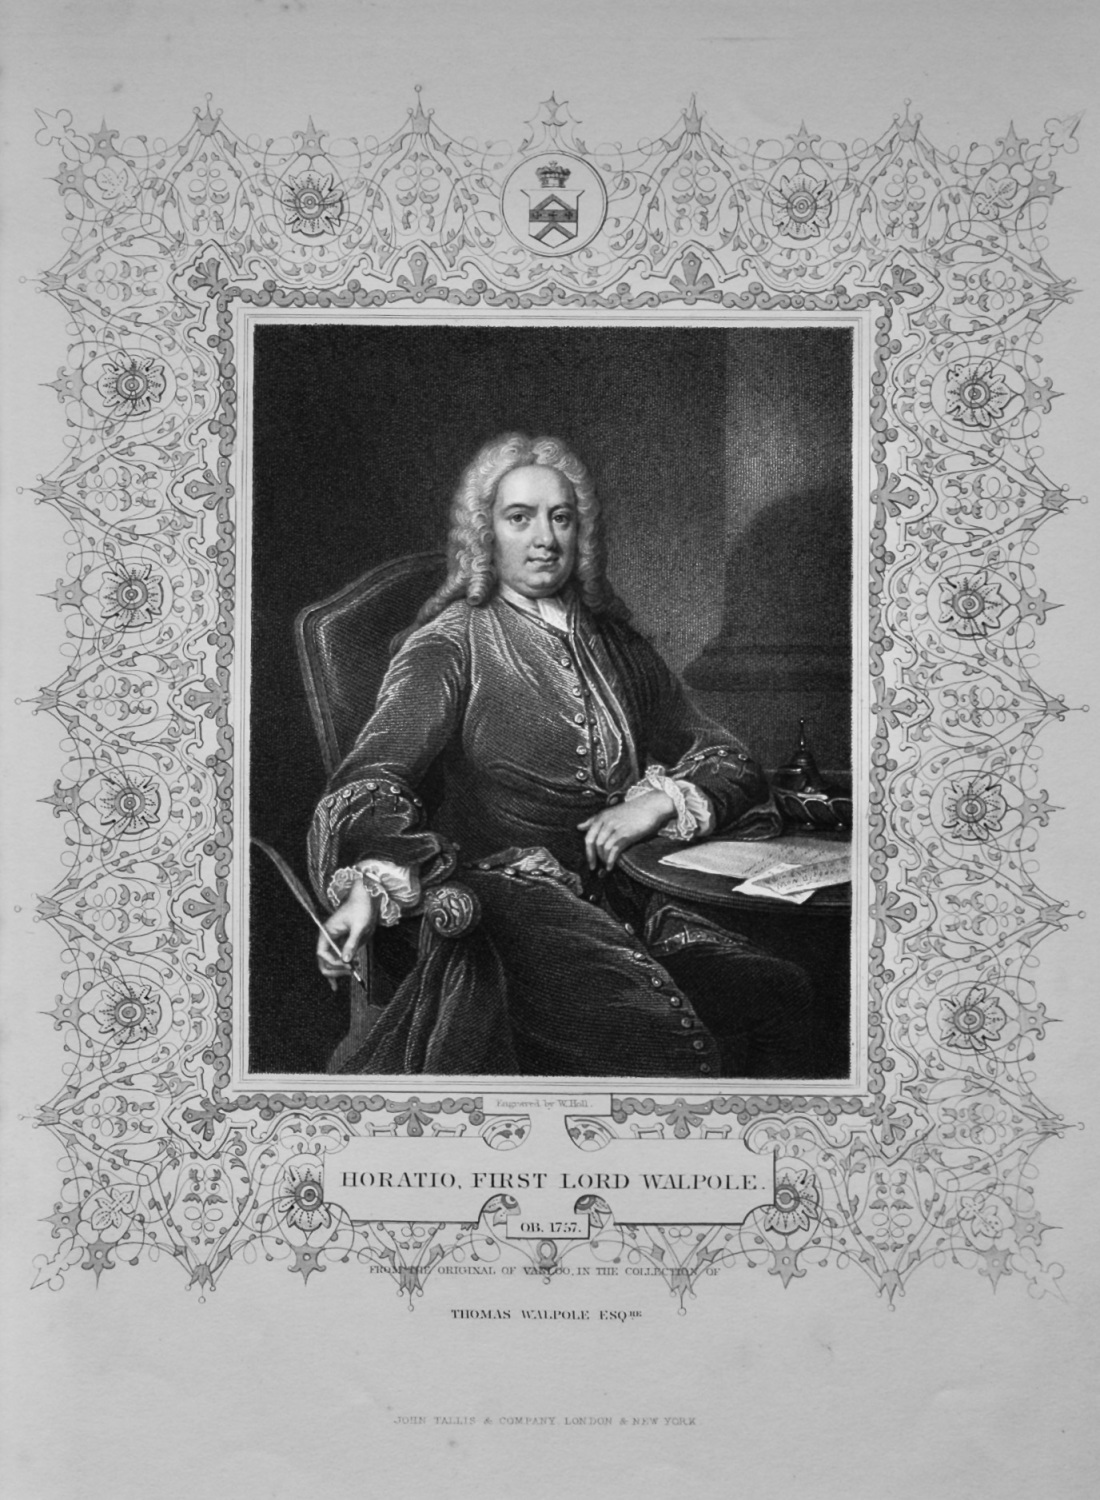 Horatio, First Lord Walpole.